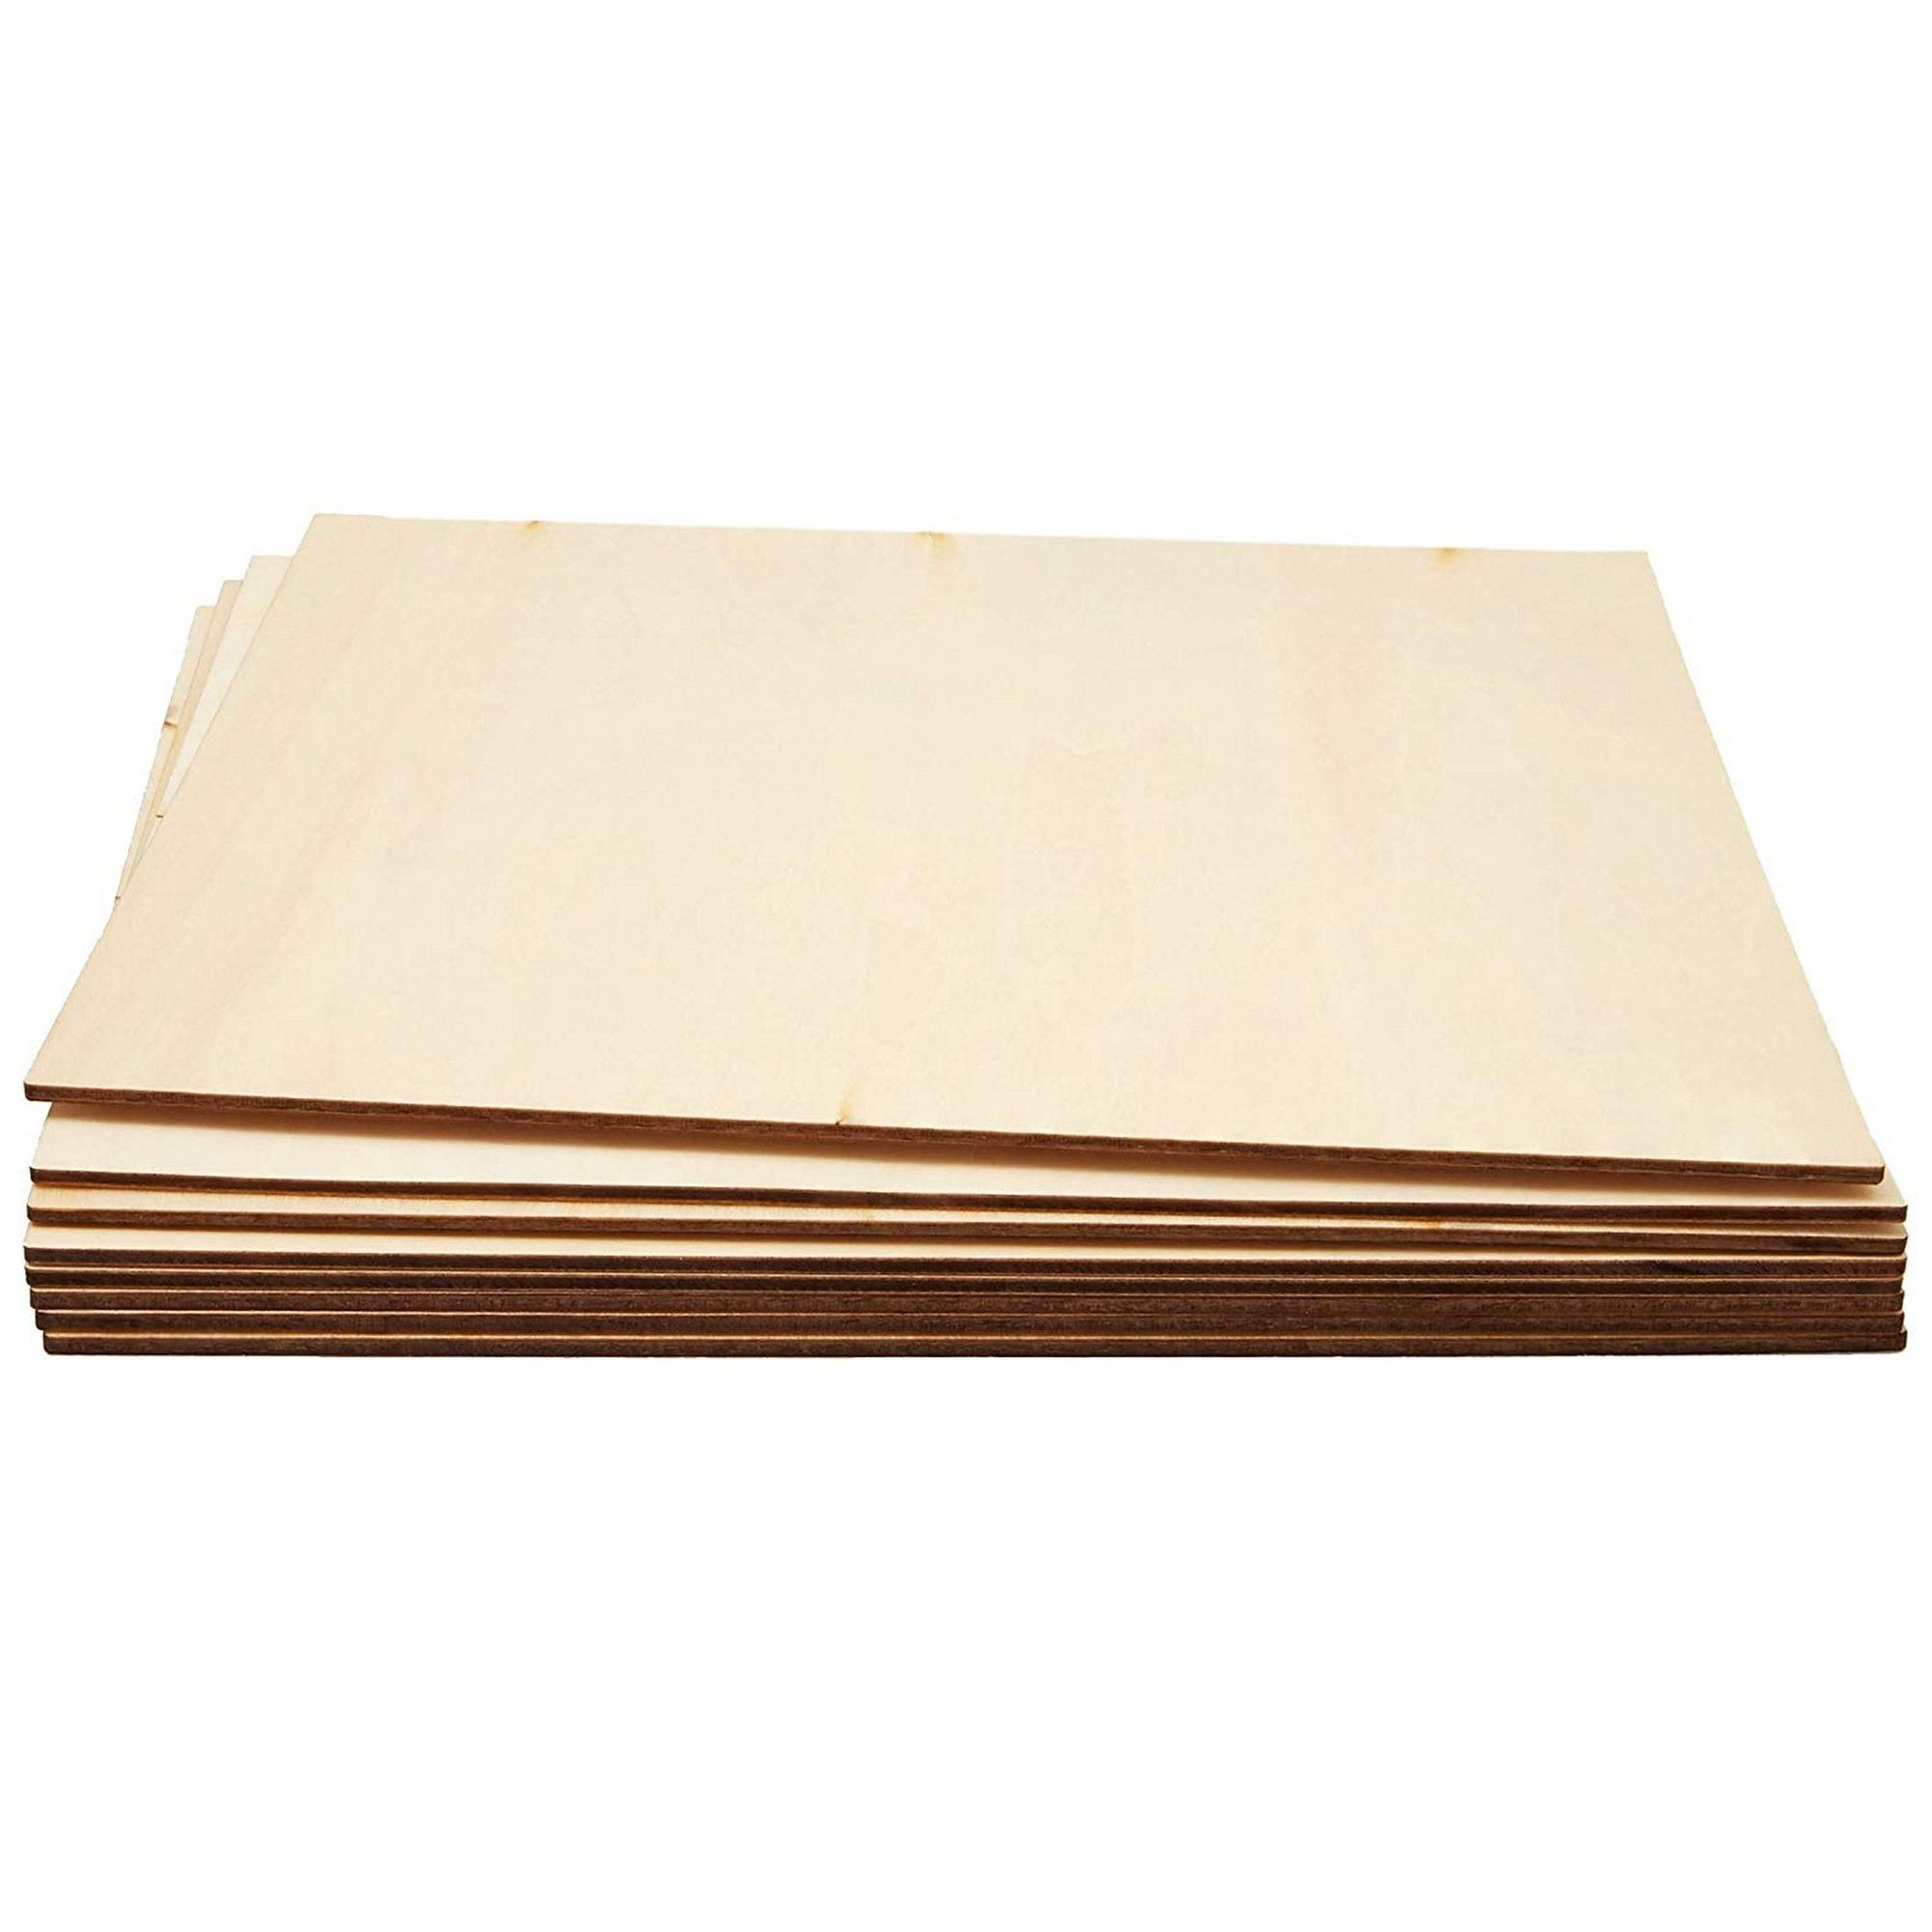 Bright Creations 8-Pack Square Basswood Plywood Thin Sheets for Wood Burning 10 Inches